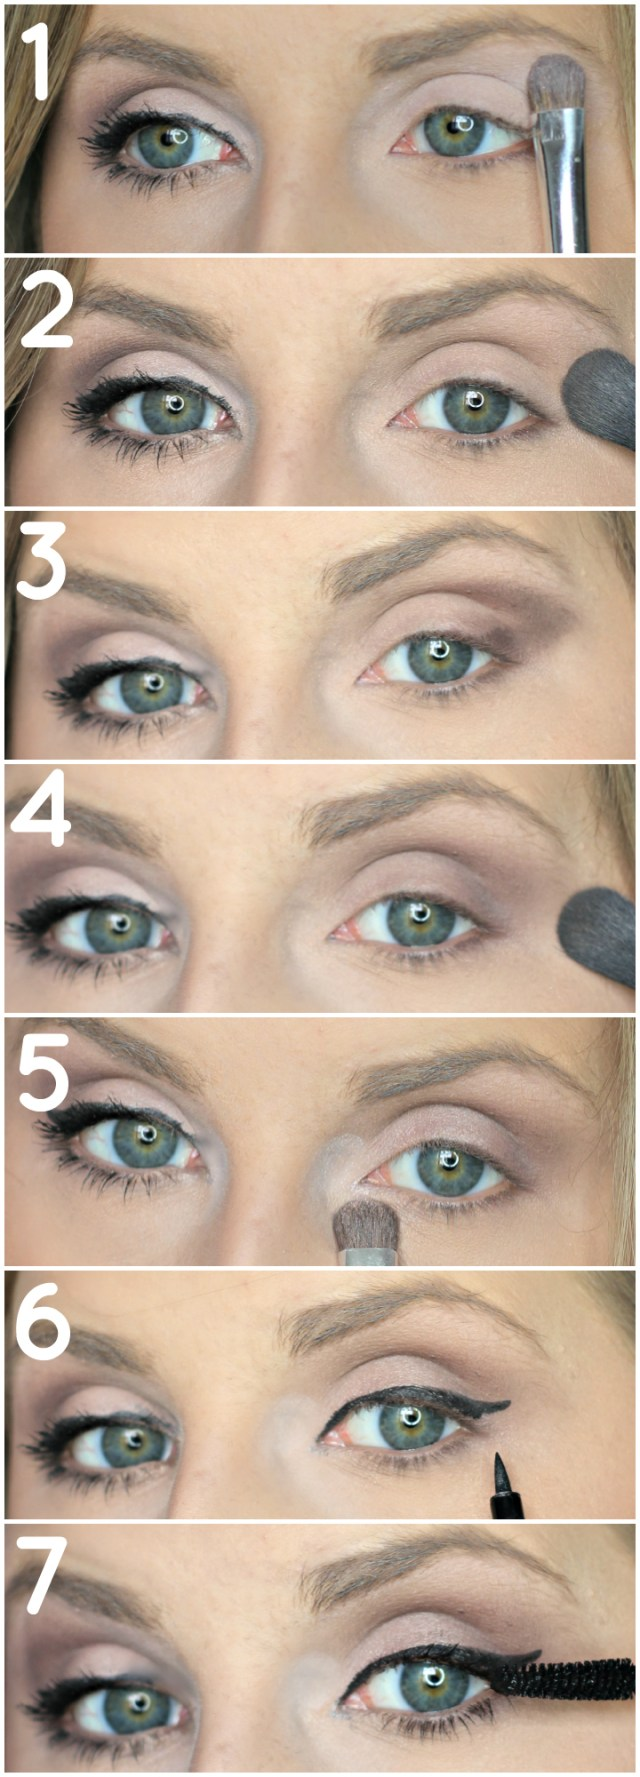 Eye Makeup To Make Small Eyes Look Bigger Bigger Eyes With Makeup Ashley Brooke Nicholas